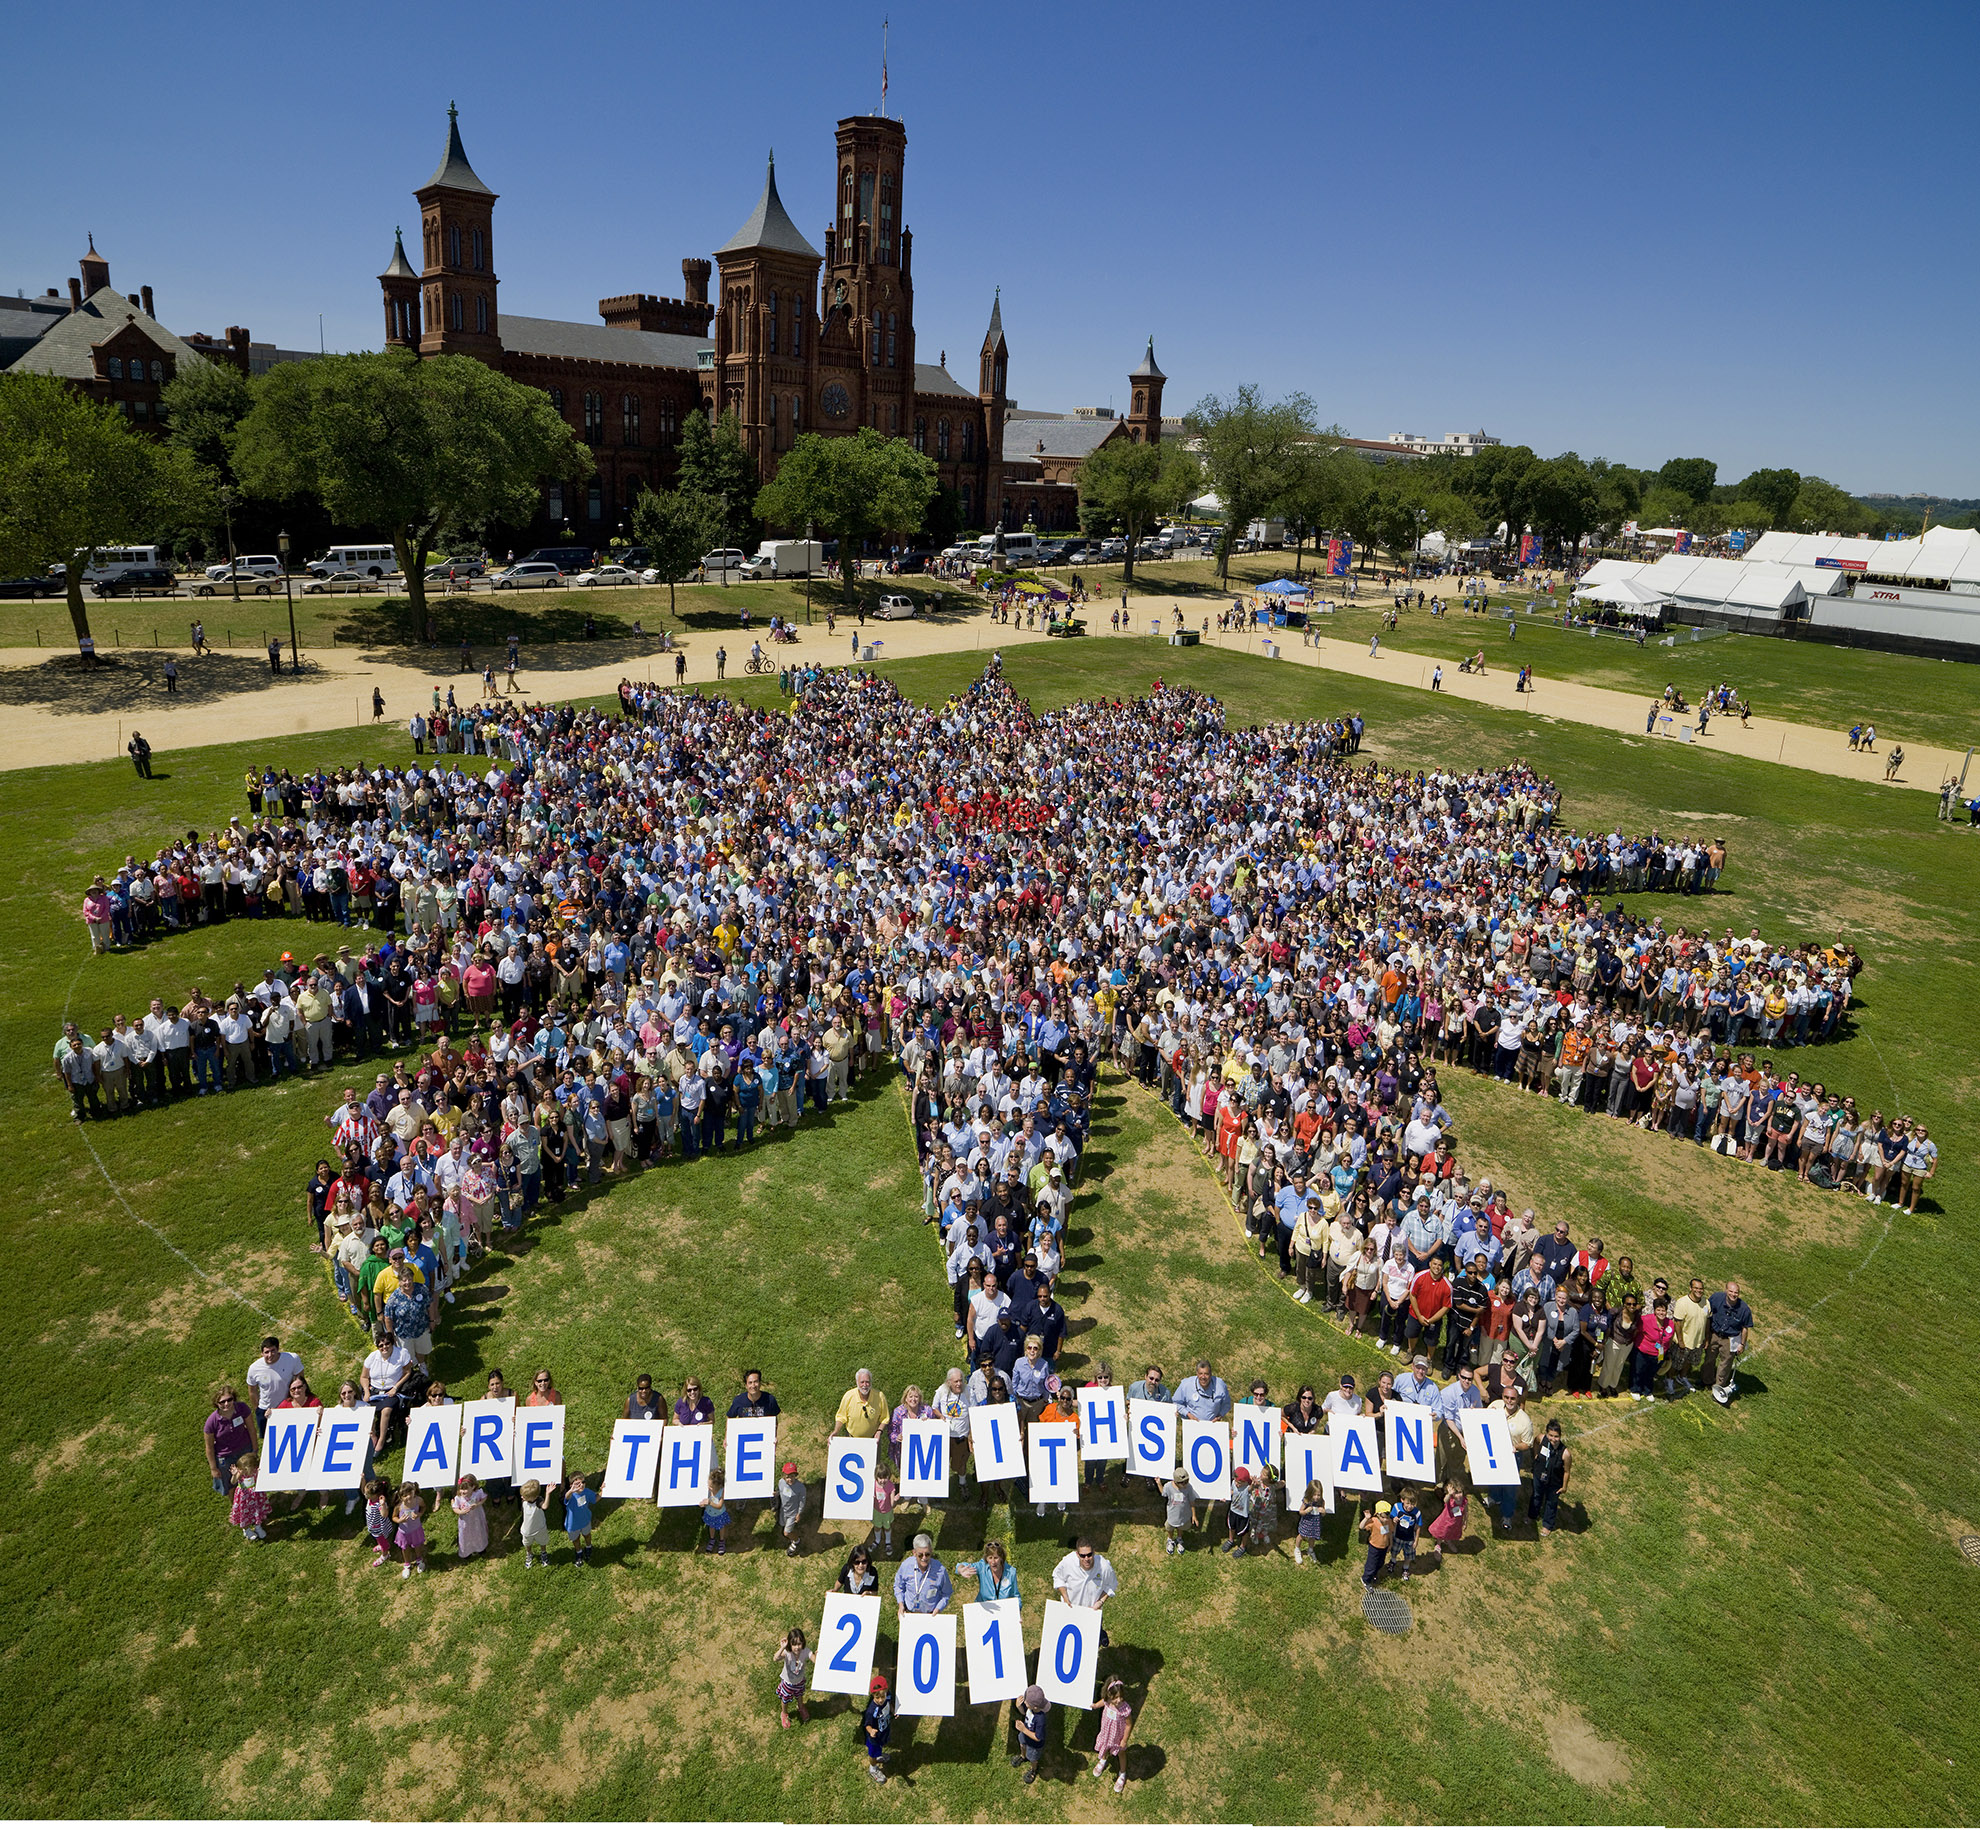 Standing in the shape of the Smithsonian Institution sunburst, close to 4,000 Smithsonian staff, interns, fellows and volunteers gathered on the National Mall in front of the Smithsonian Castle on Thursday, July 1, for this group portrait. This was the first-ever attempt to gather the employees and others for a group shot in the Smithsonian's 164-year history and was the largest gathering of Smithsonian employees, fellows, interns, volunteers and retirees to date. The photo was organized by the Smithsonian Community Committee and was taken during the Smithsonian Staff Picnic, held annually on the National Mall.  Photo: Dane Penland, Smithsonian Institution